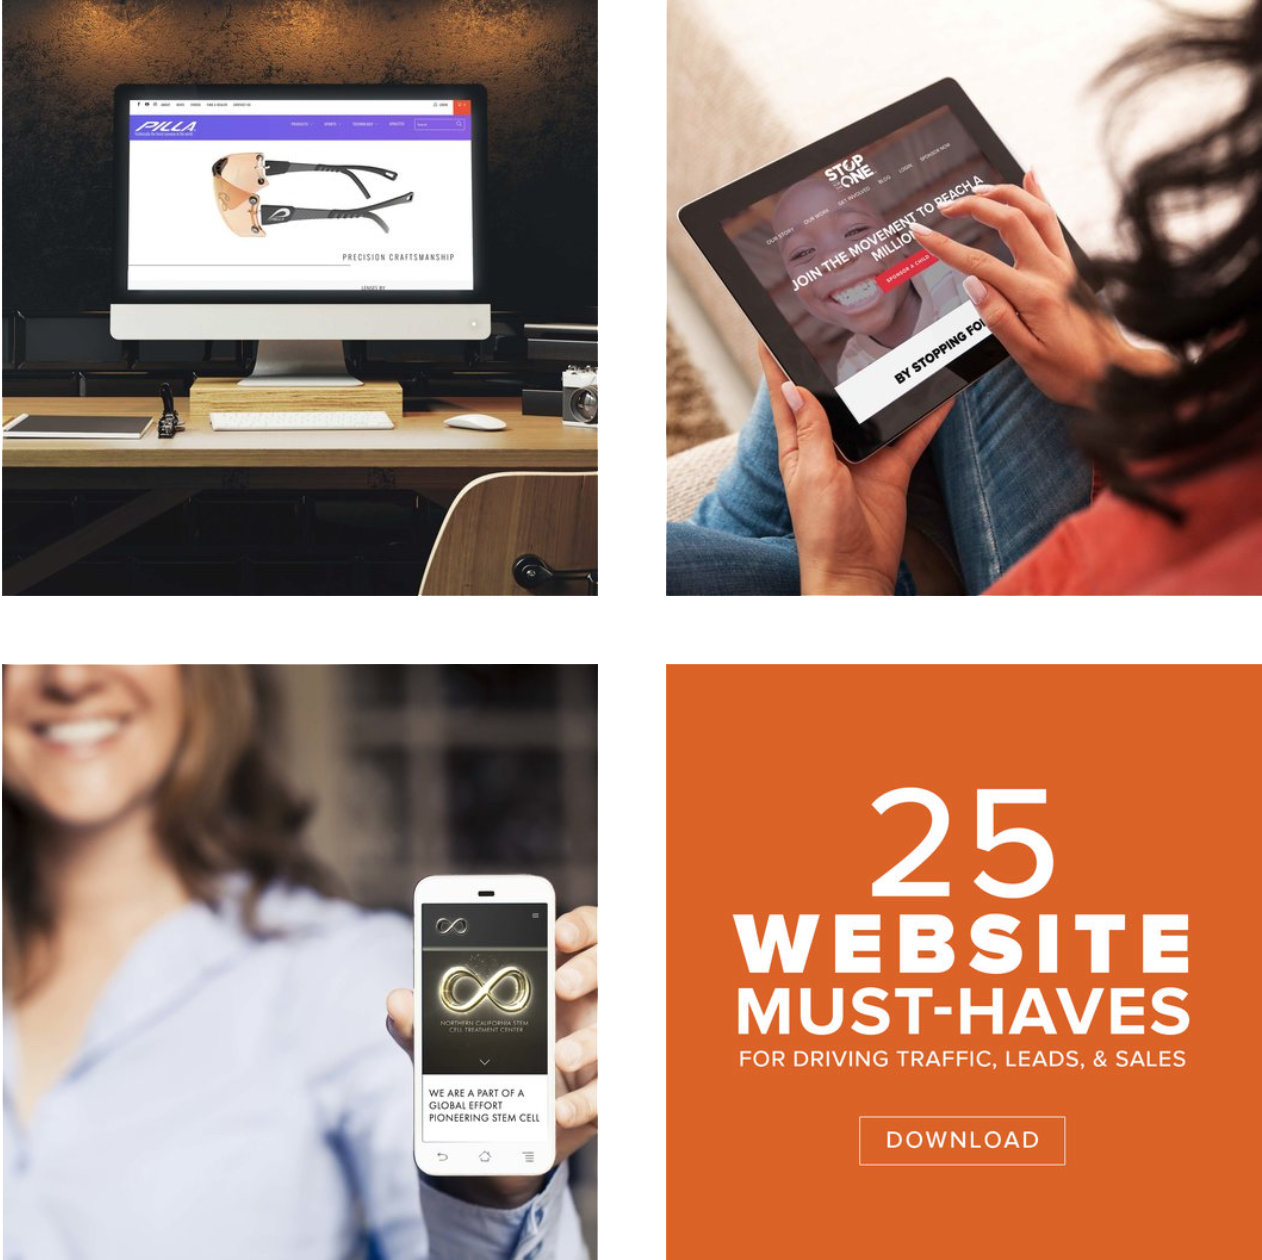 25-Website-Must-haves-Simple